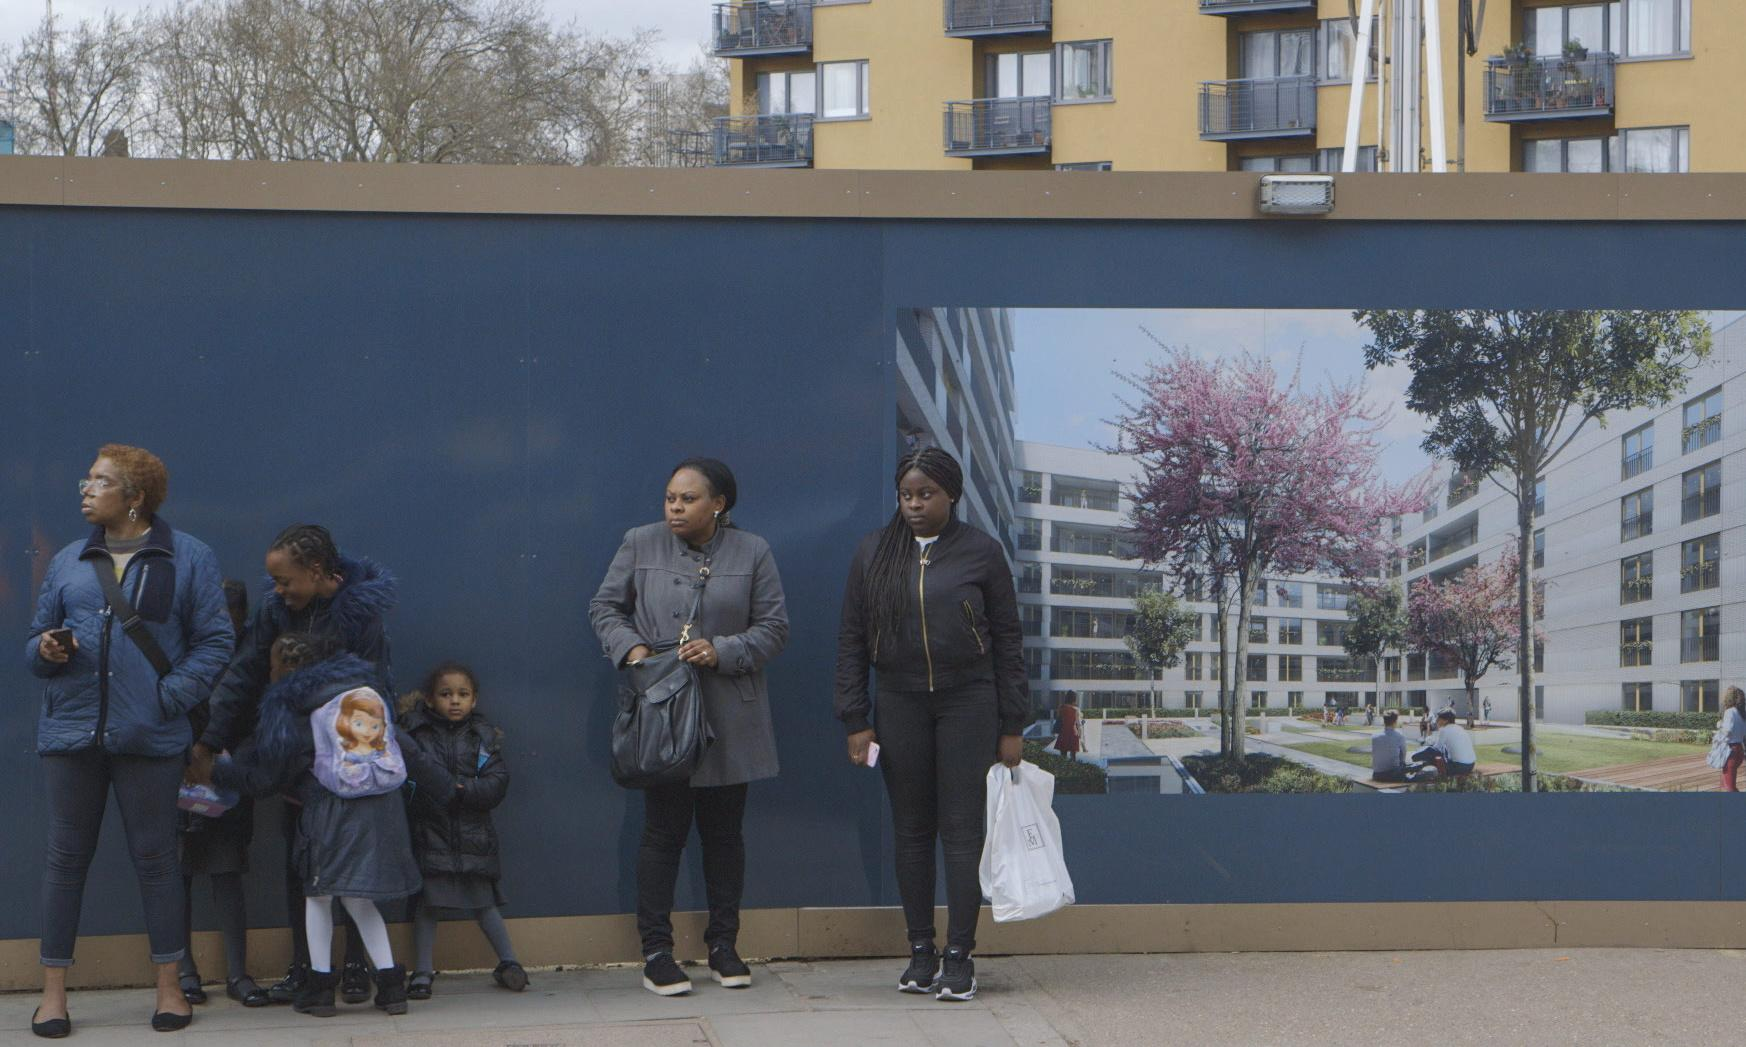 The Street review – quietly enraging portrait of Hoxton lives on the brink